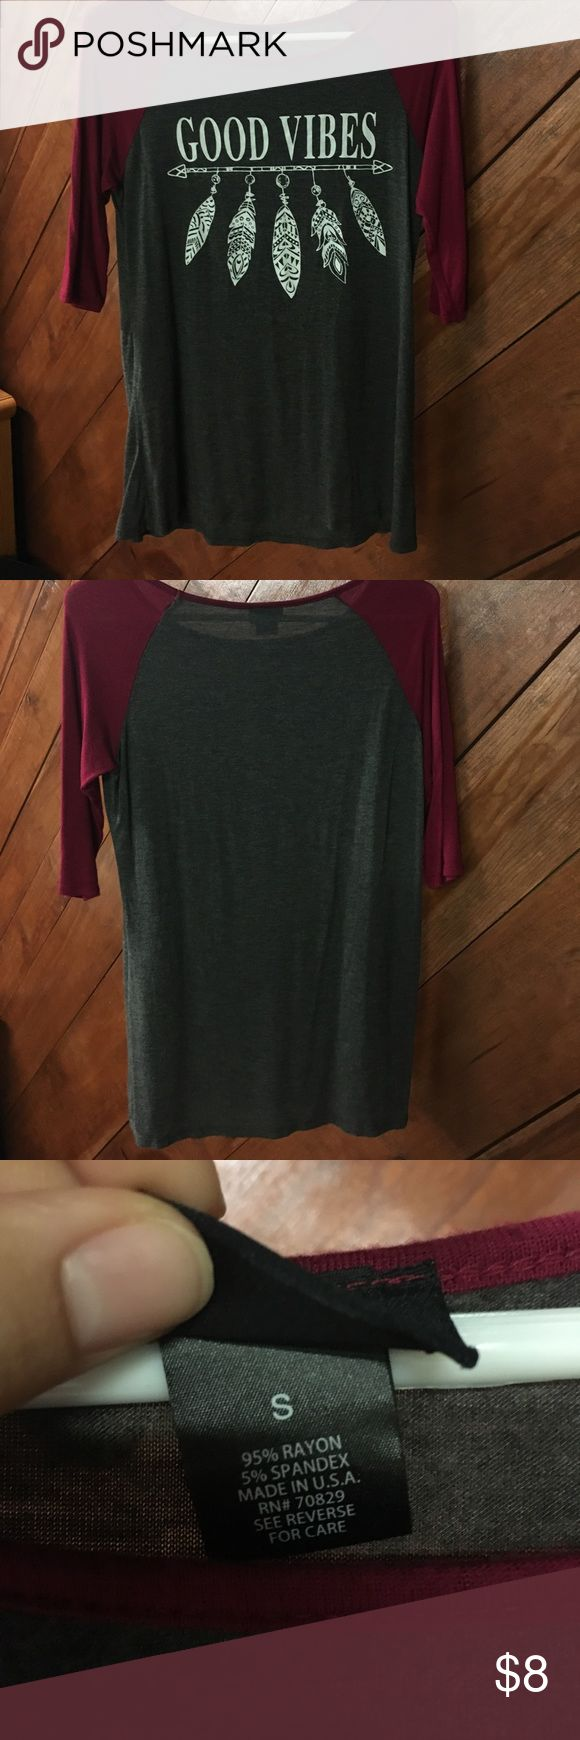 """Rue 21 3/4 sleeve Rue 21 3/4 sleve color blocked """"Good Vibes"""" shirt. size small. super soft and stretchy. Rue 21 Tops Tees - Long Sleeve"""